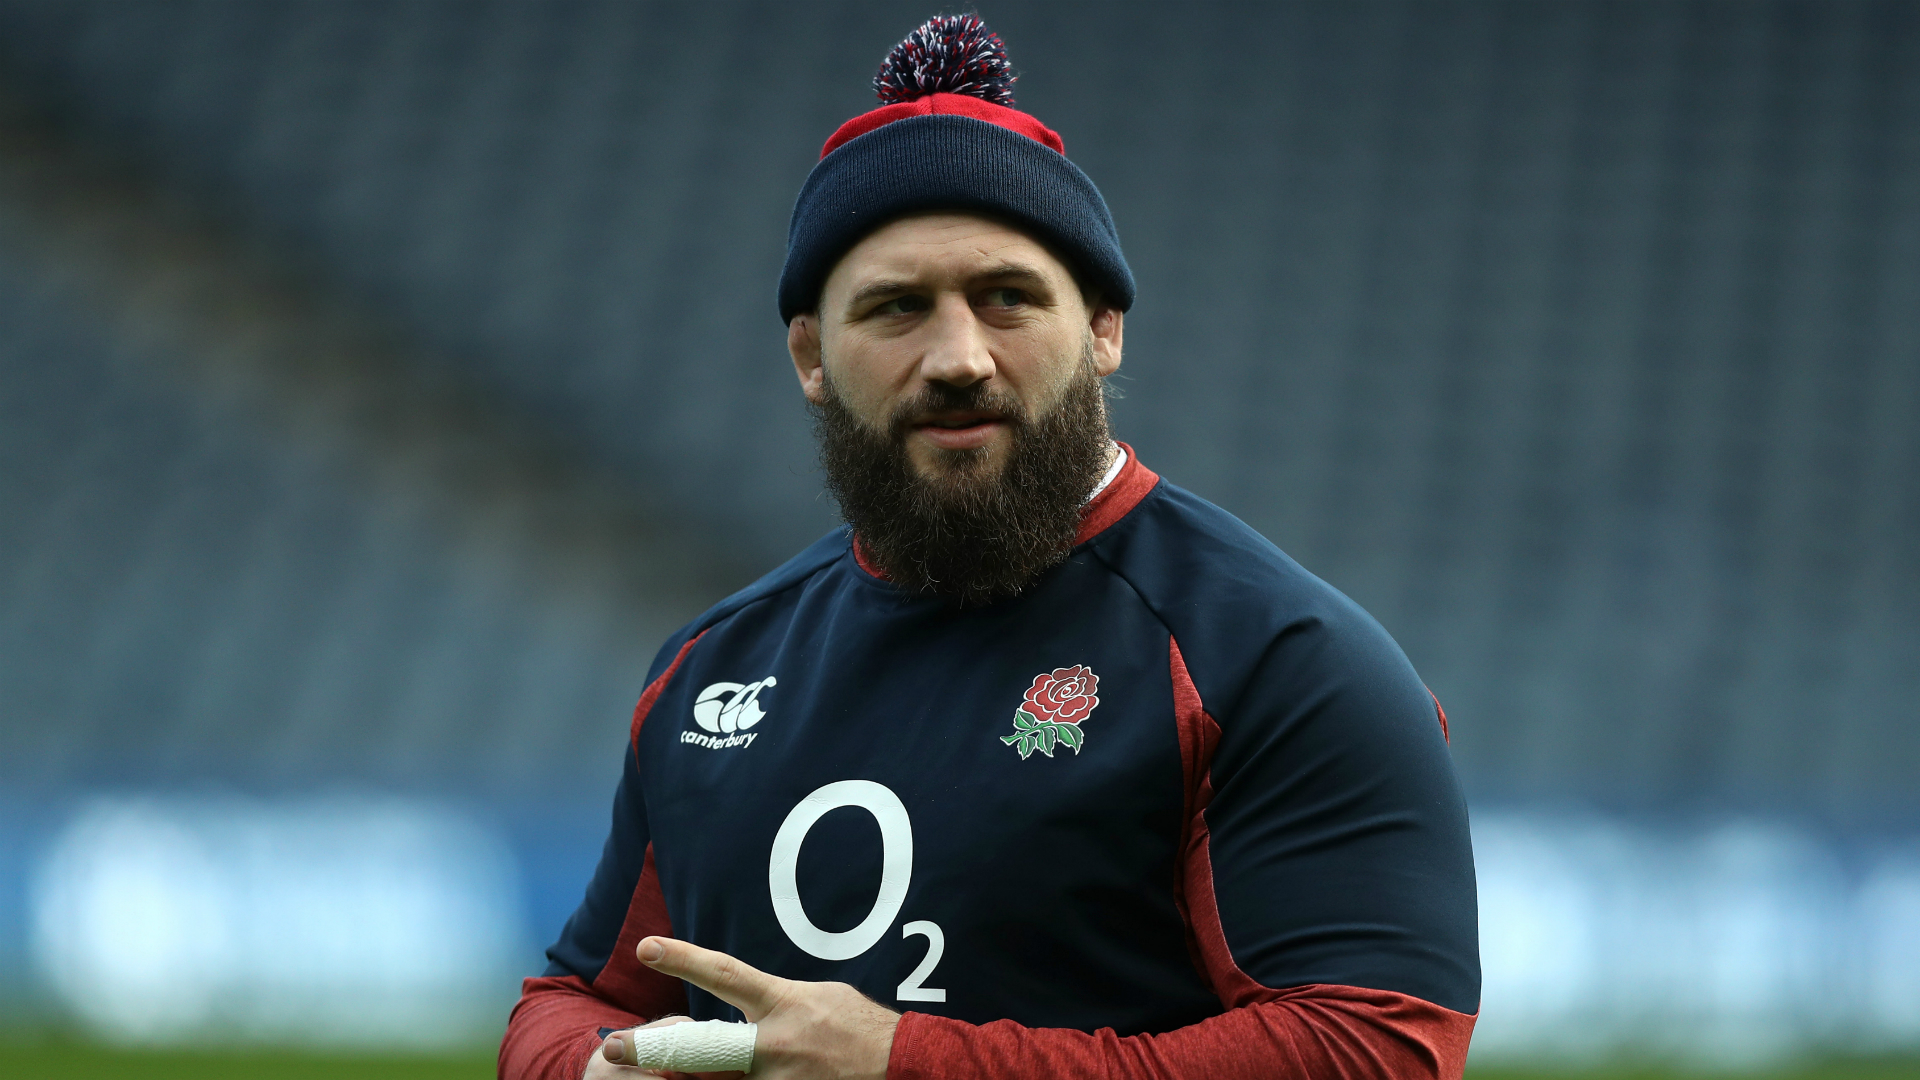 Joe Marler and Courtney Lawes cited after England's Six Nations win over Wales